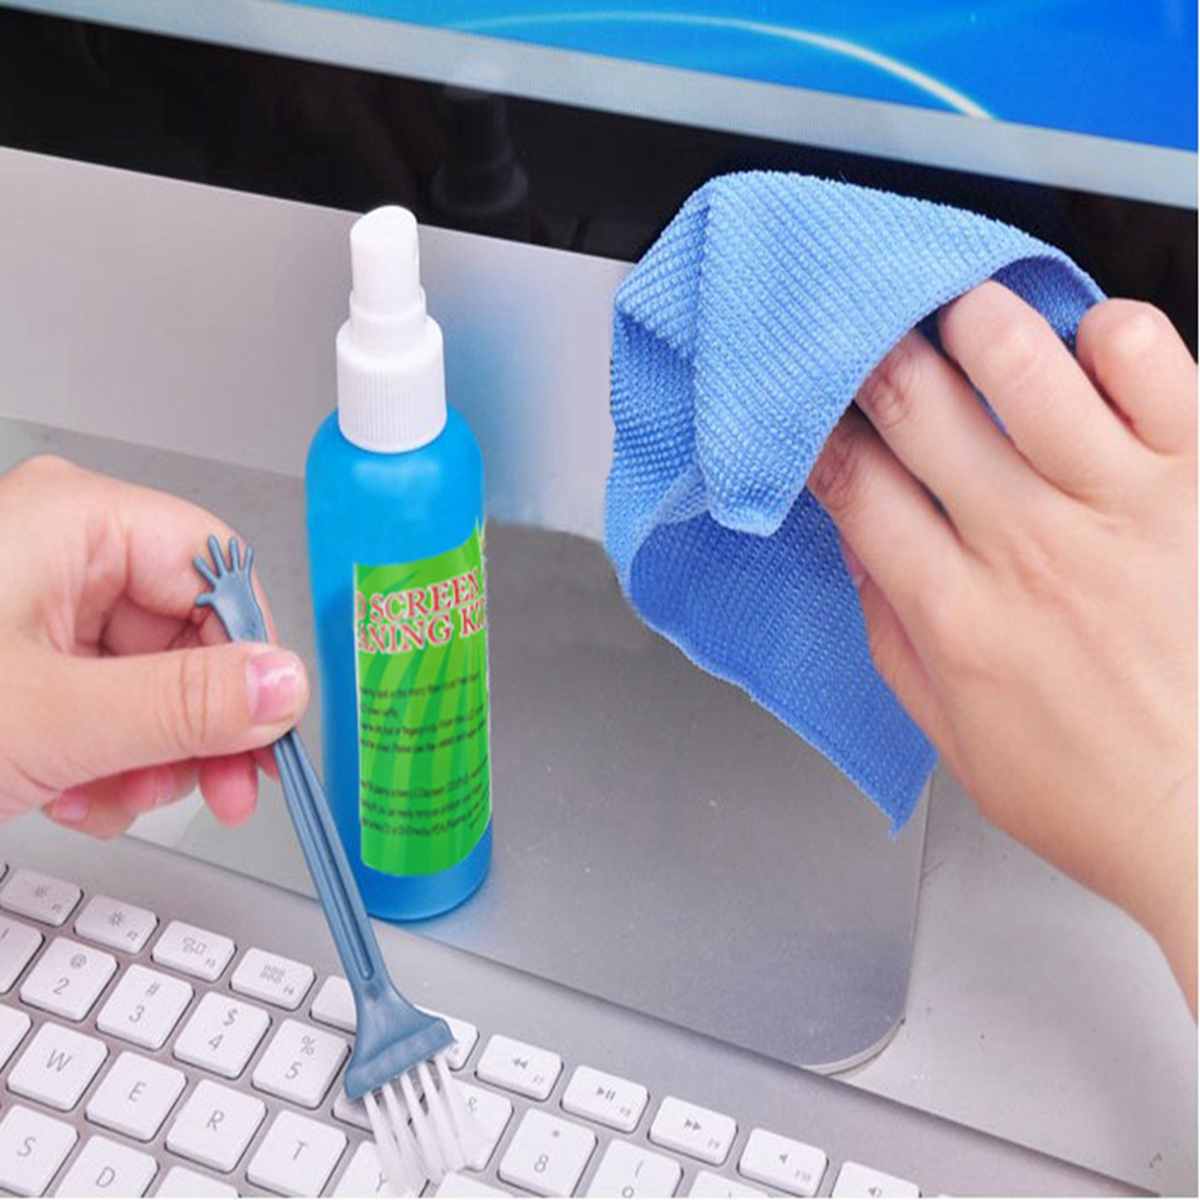 3in1 pc laptop lcd monitor cleaner plasma screen cleaning kit 11street malaysia blank media. Black Bedroom Furniture Sets. Home Design Ideas